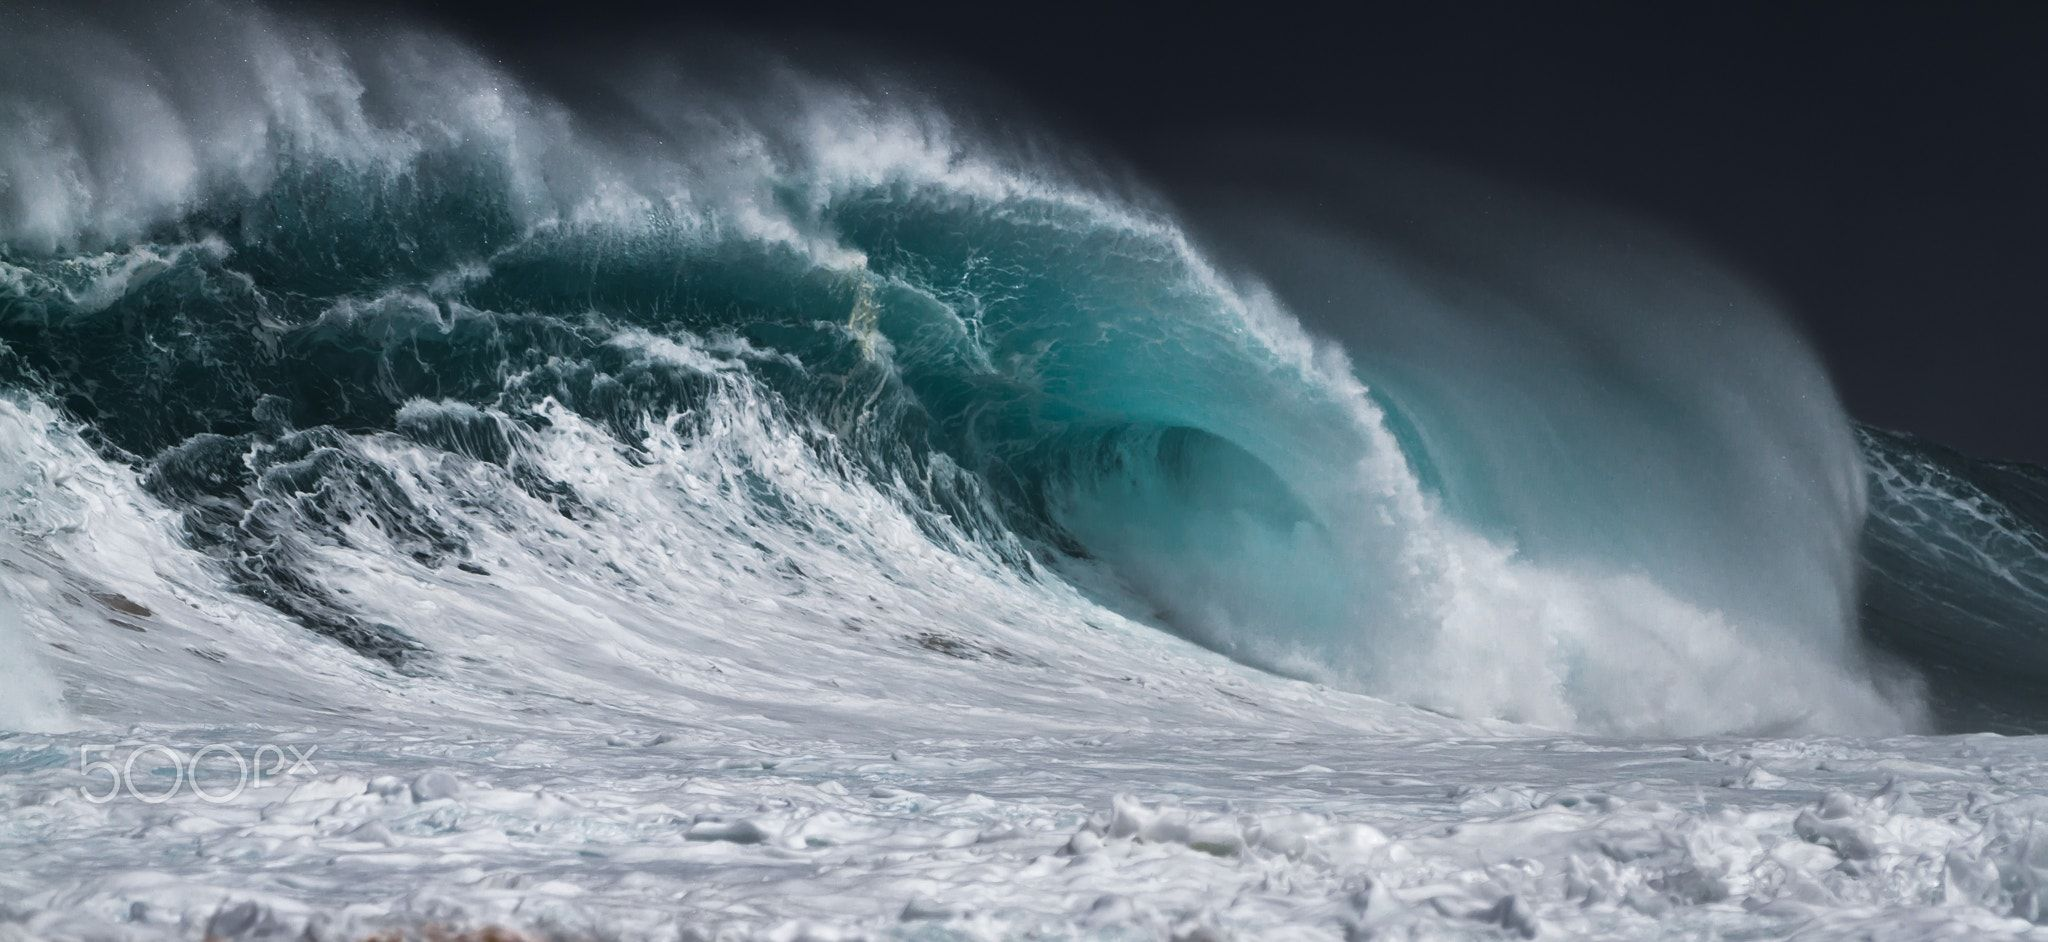 Pro Surfer Kelly Slater Unveils Best Man Made Wave Ever in